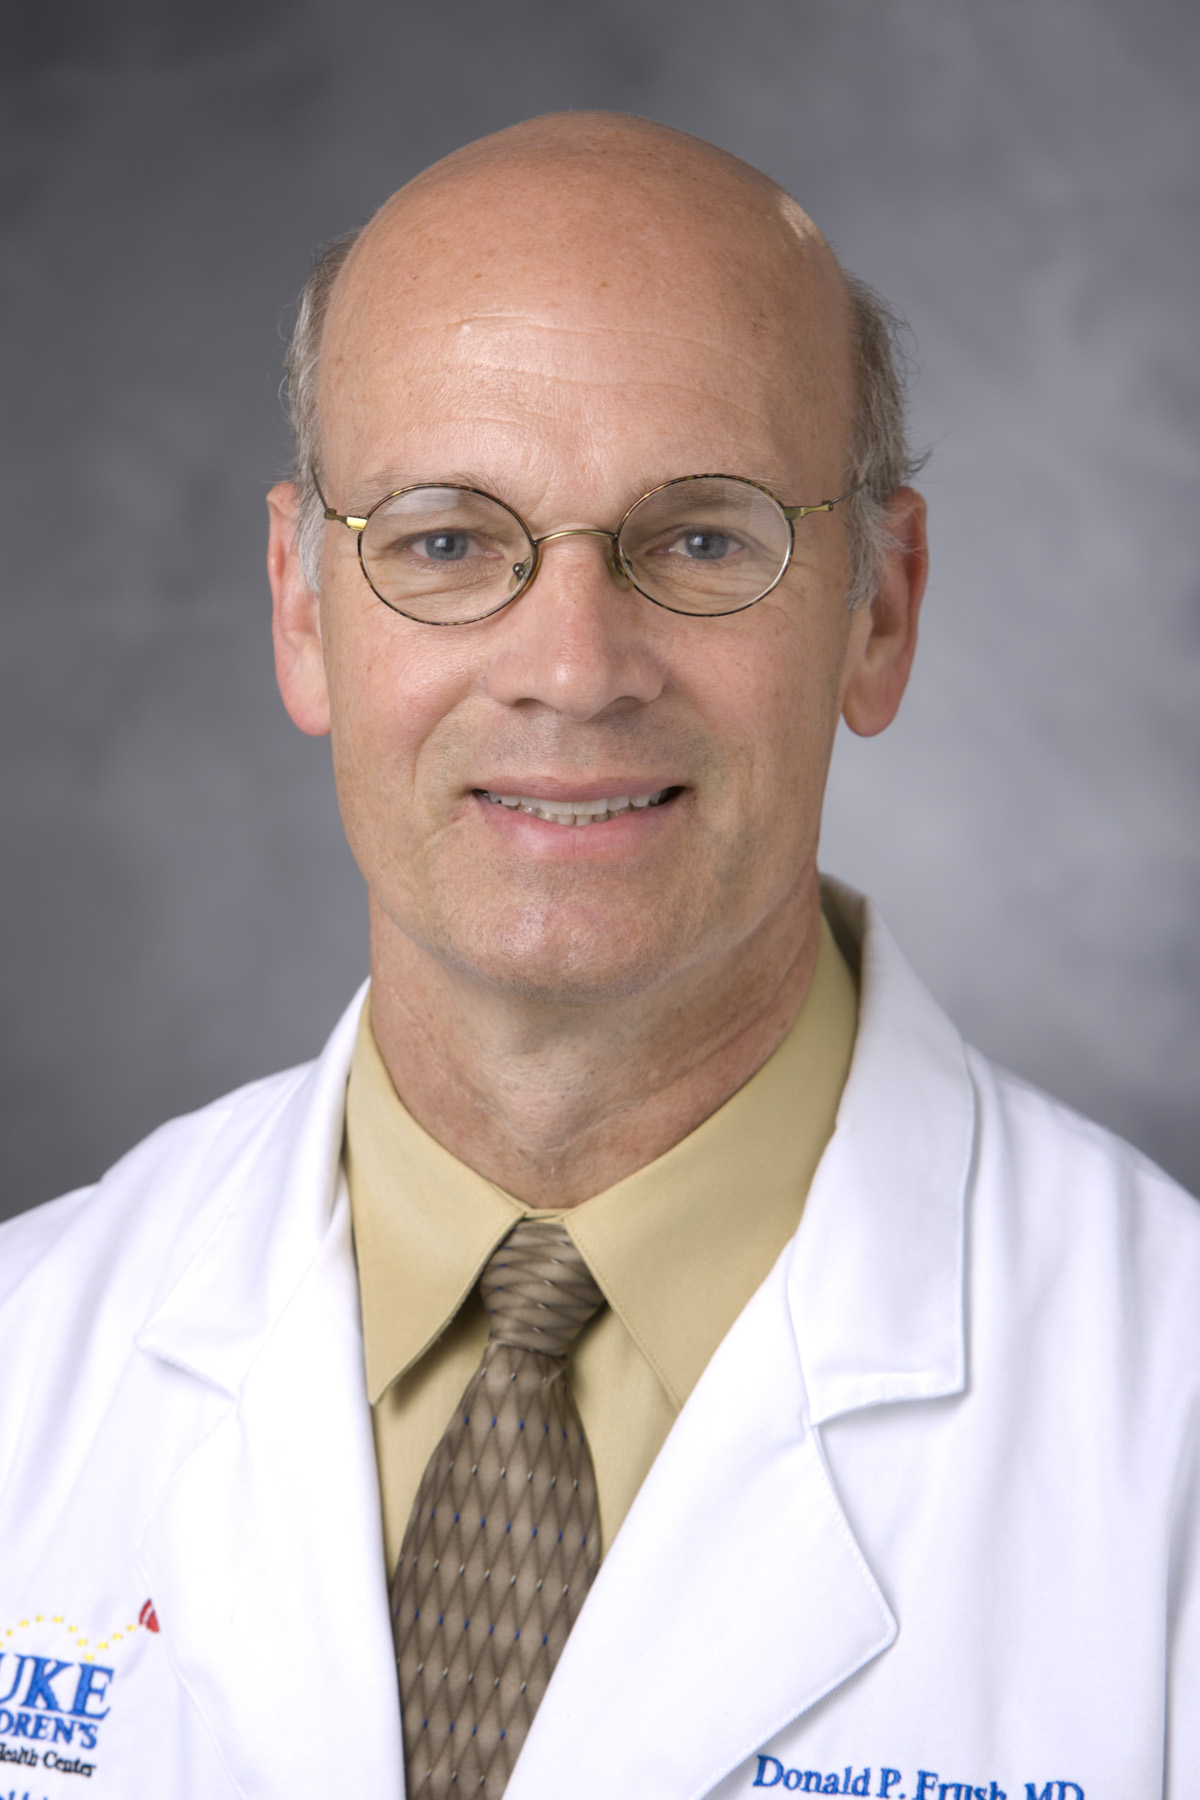 Donald P. Frush, MD, FACR, FAAP